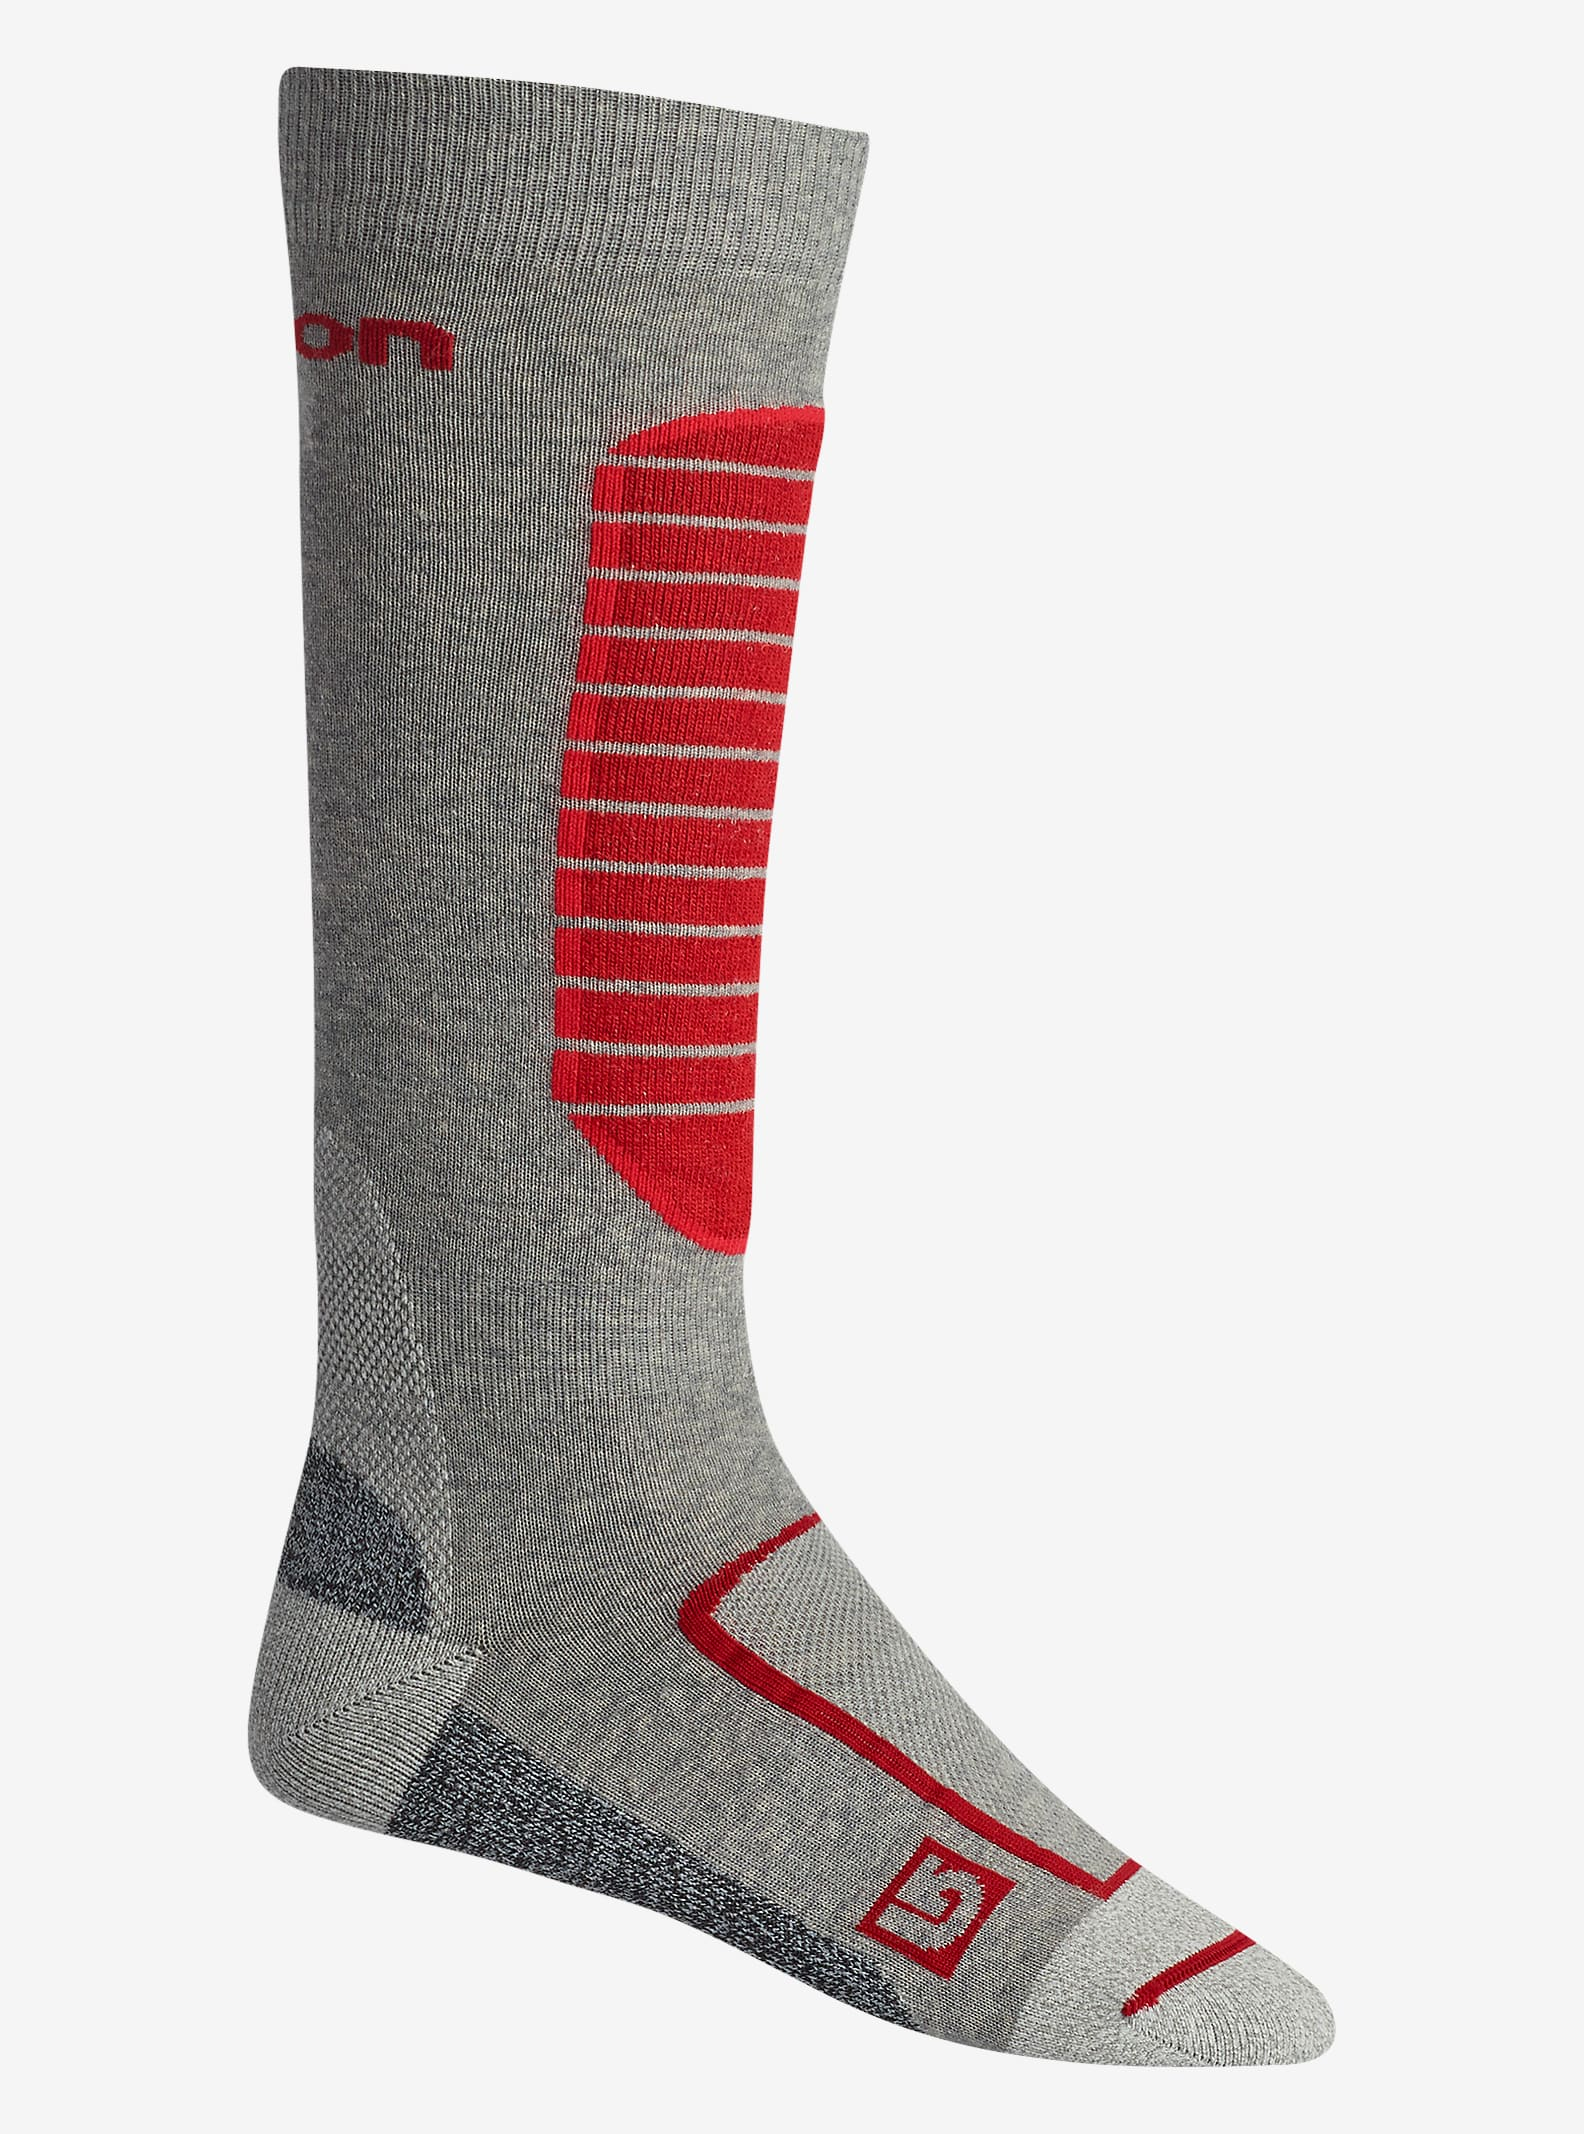 Burton Merino Phase Sock shown in Heather Iron Grey